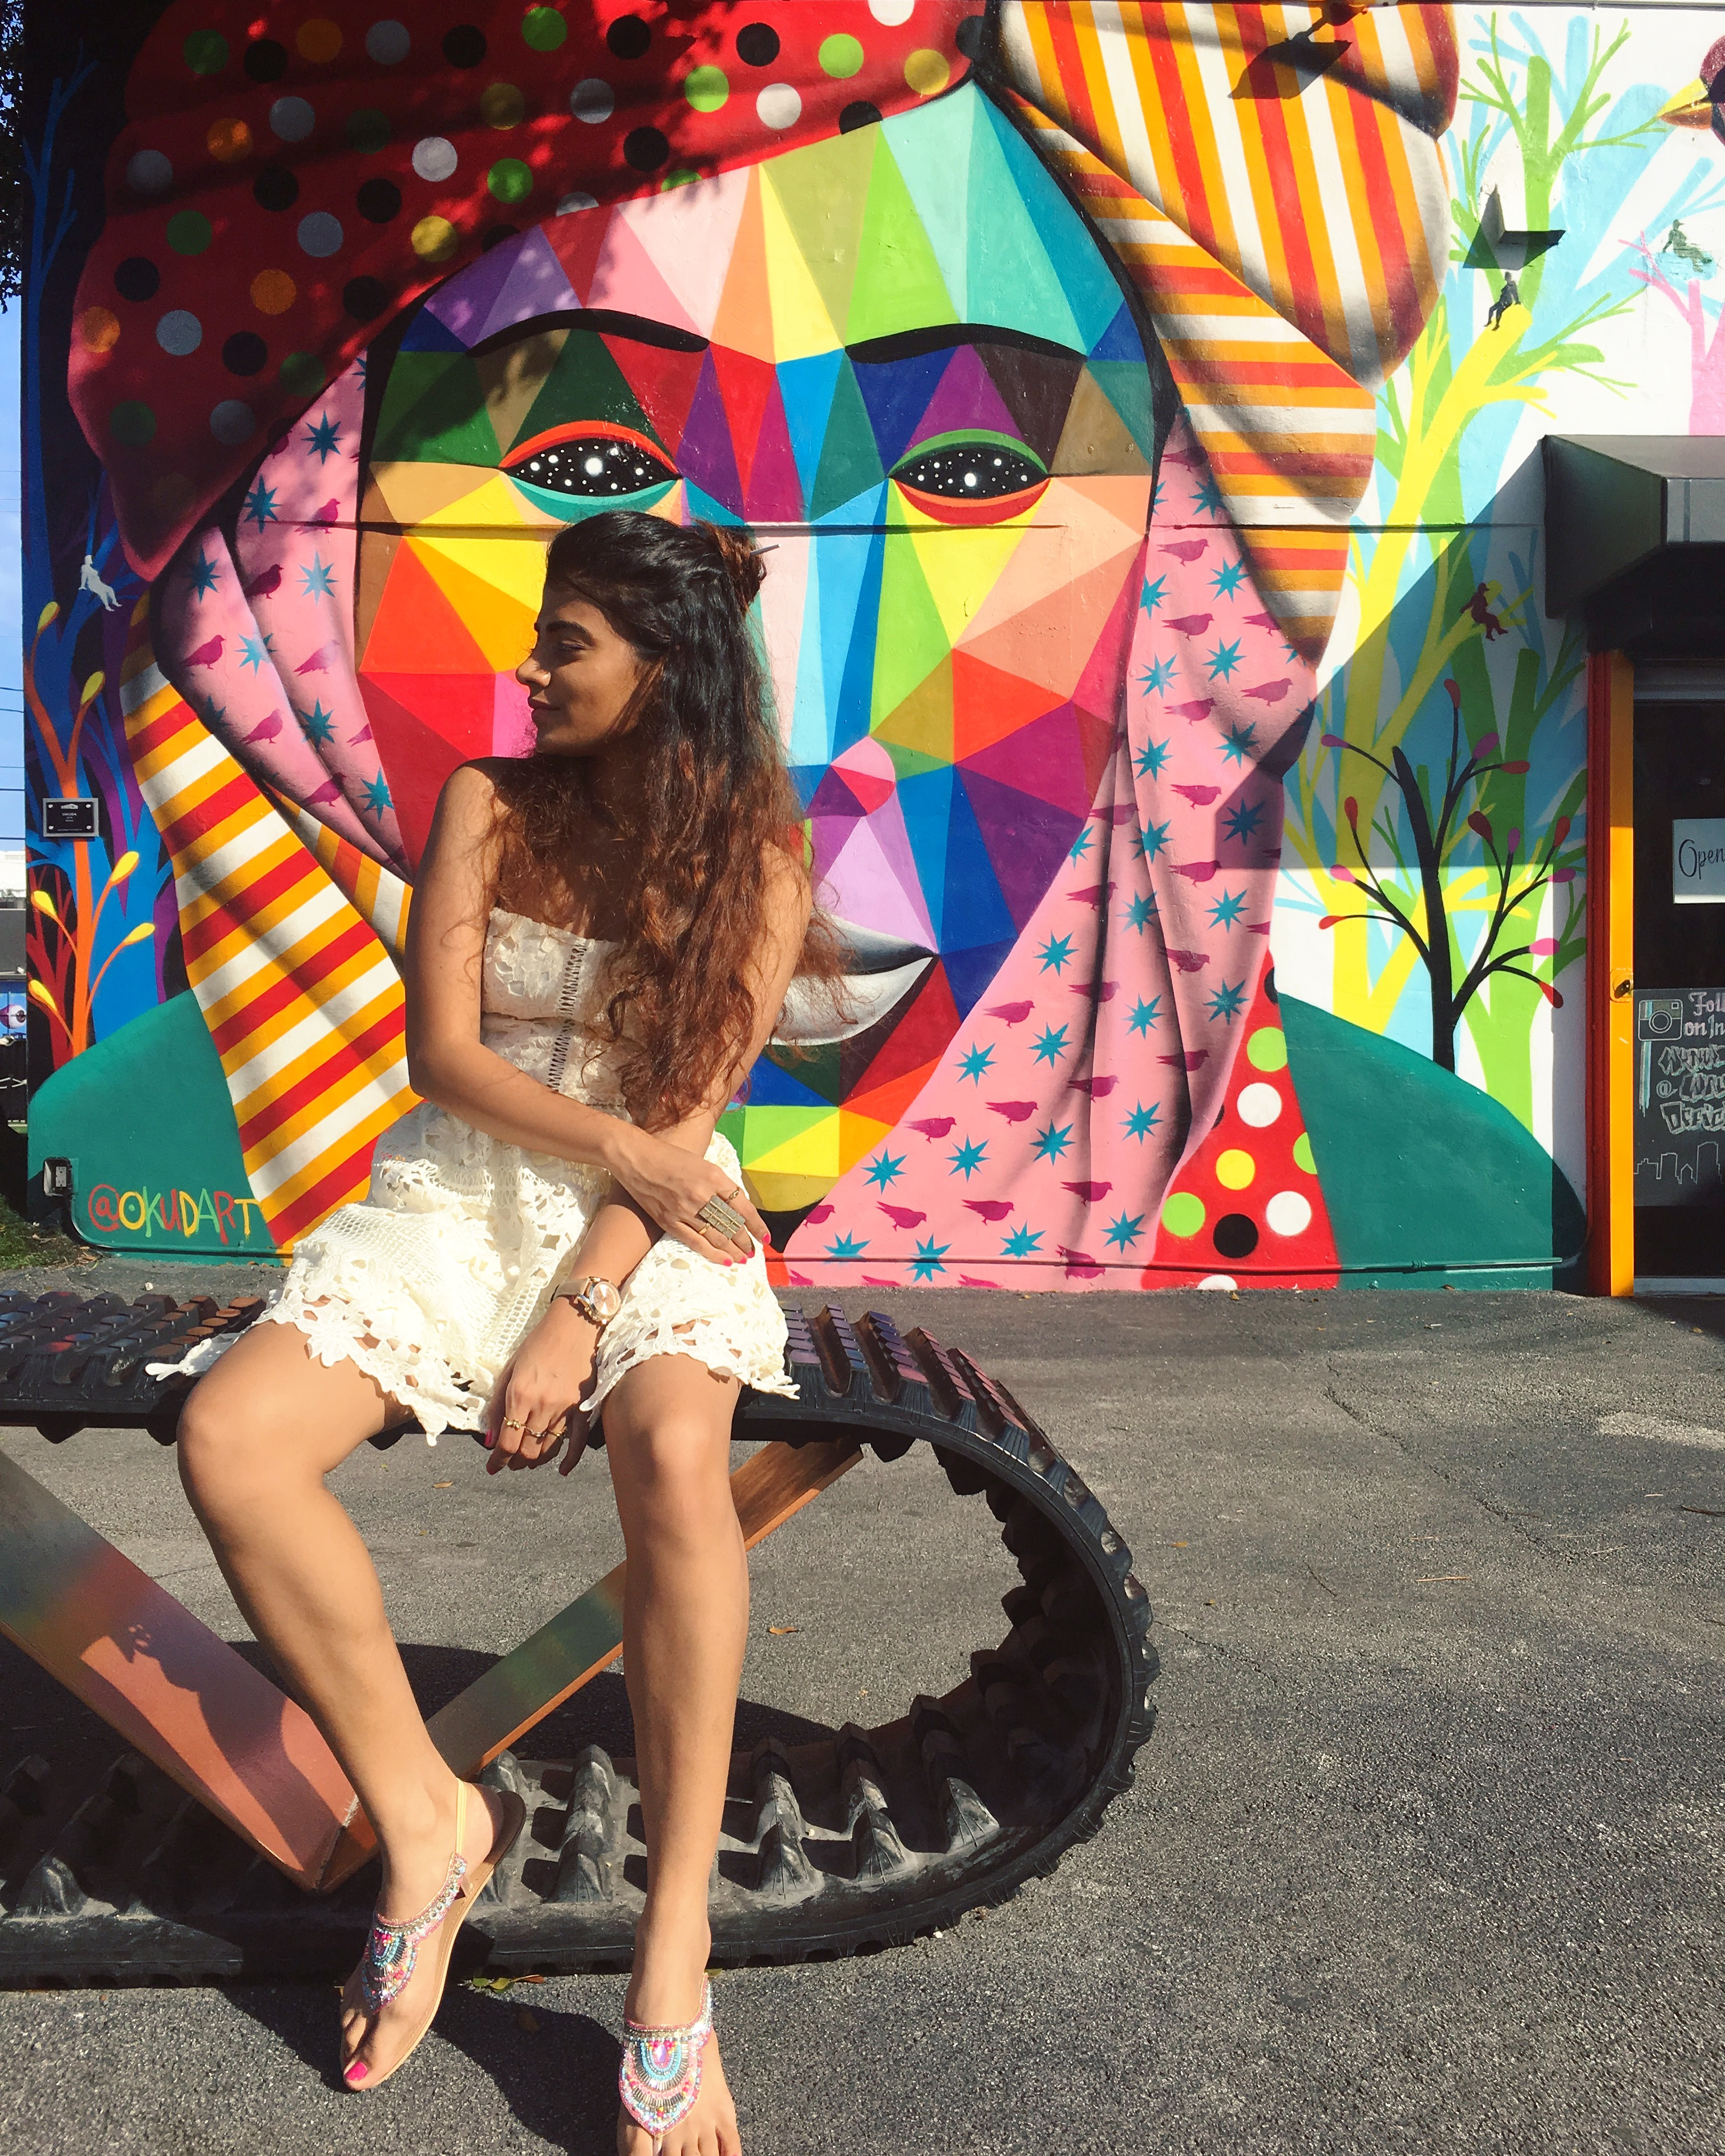 A Colorful Day at Wynwood!